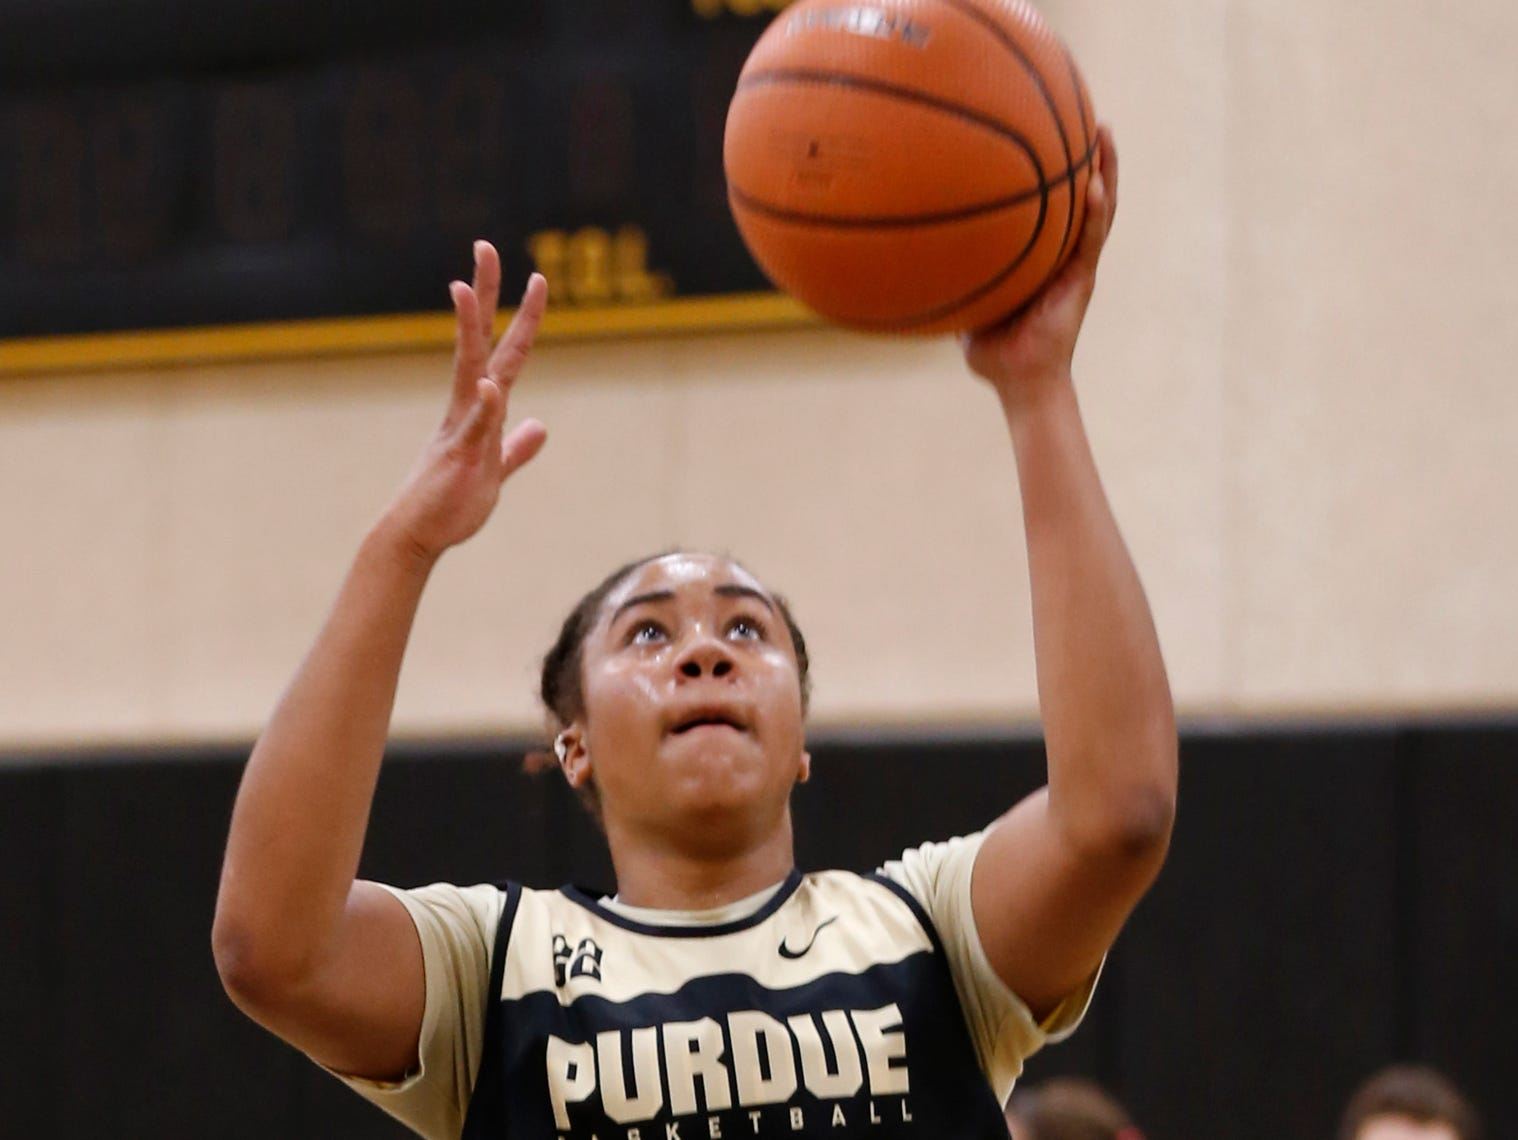 Jenelle Grant with a layup during Purdue women's basketball practice Wednesday, September 26, 2018, at Cardinal Court in Mackey Arena.